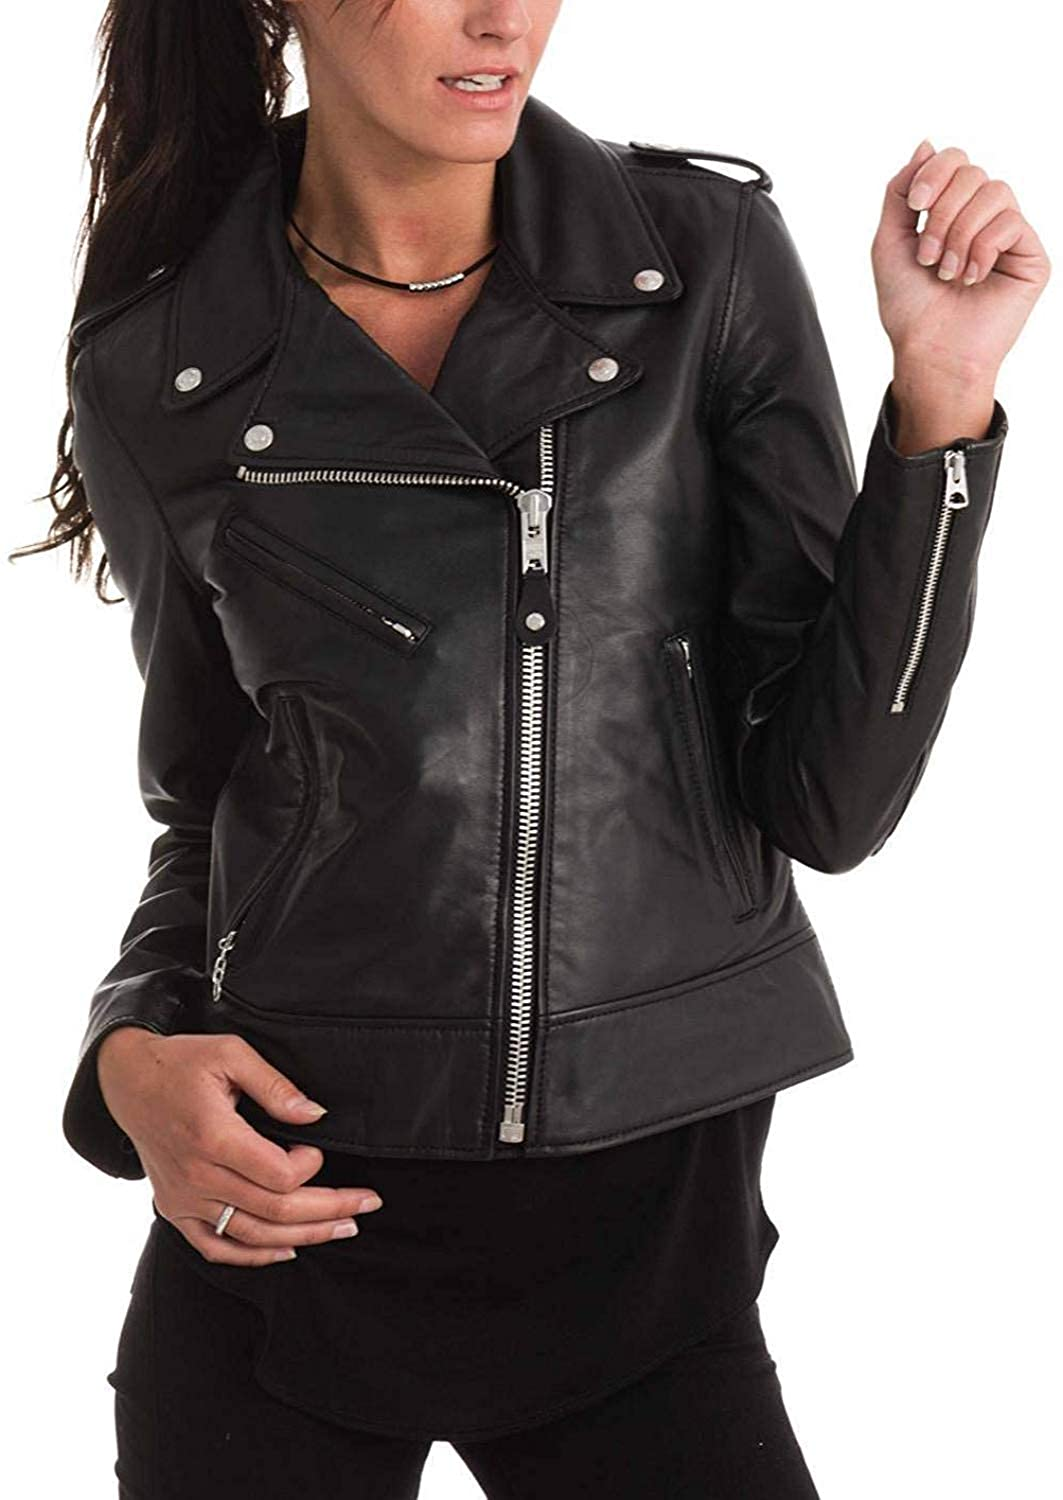 Black46fc DOLLY LAMB 100% Leather Jacket for Women  Slim Fit & Quilted  Moto, Bomber, Biker Winter Casual Wear